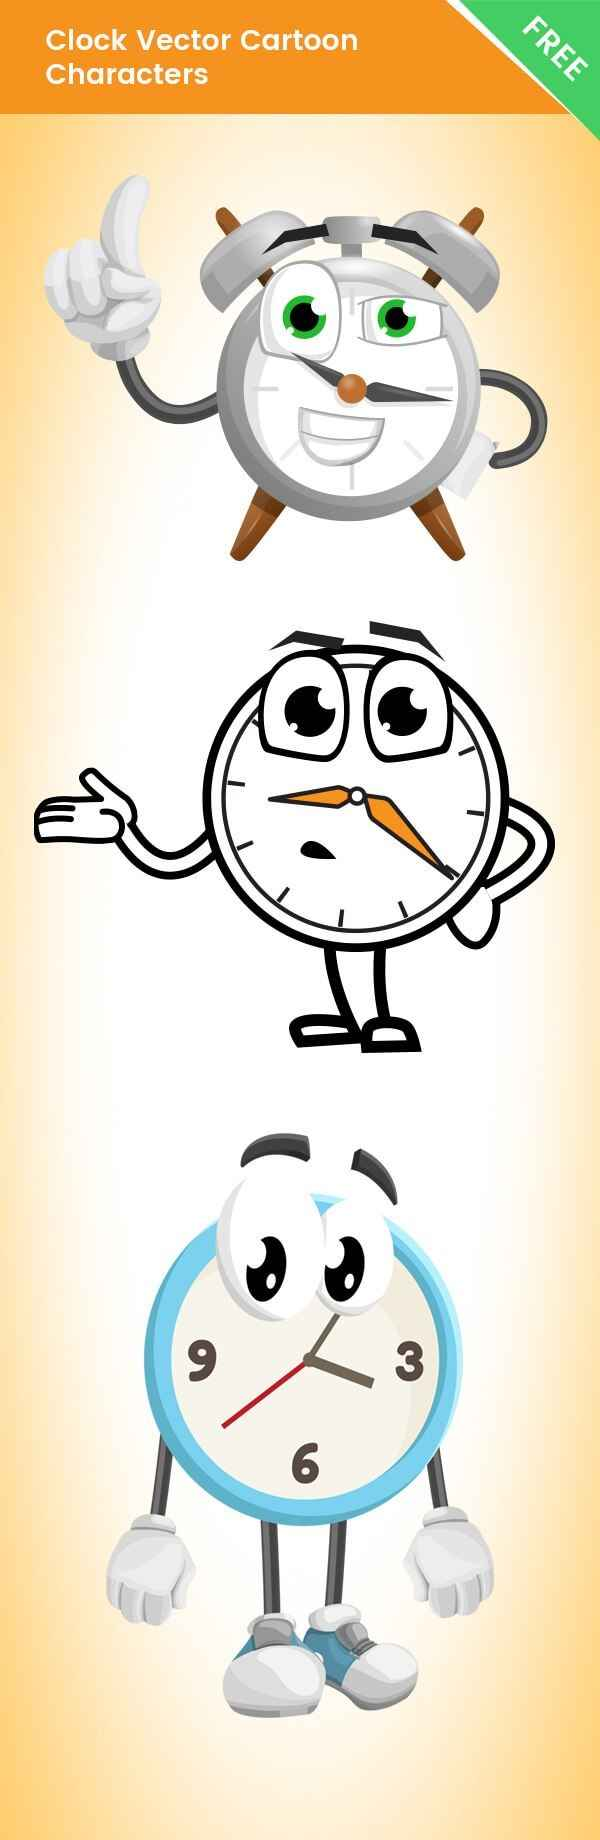 Clock Vector Cartoon Characters Free Set